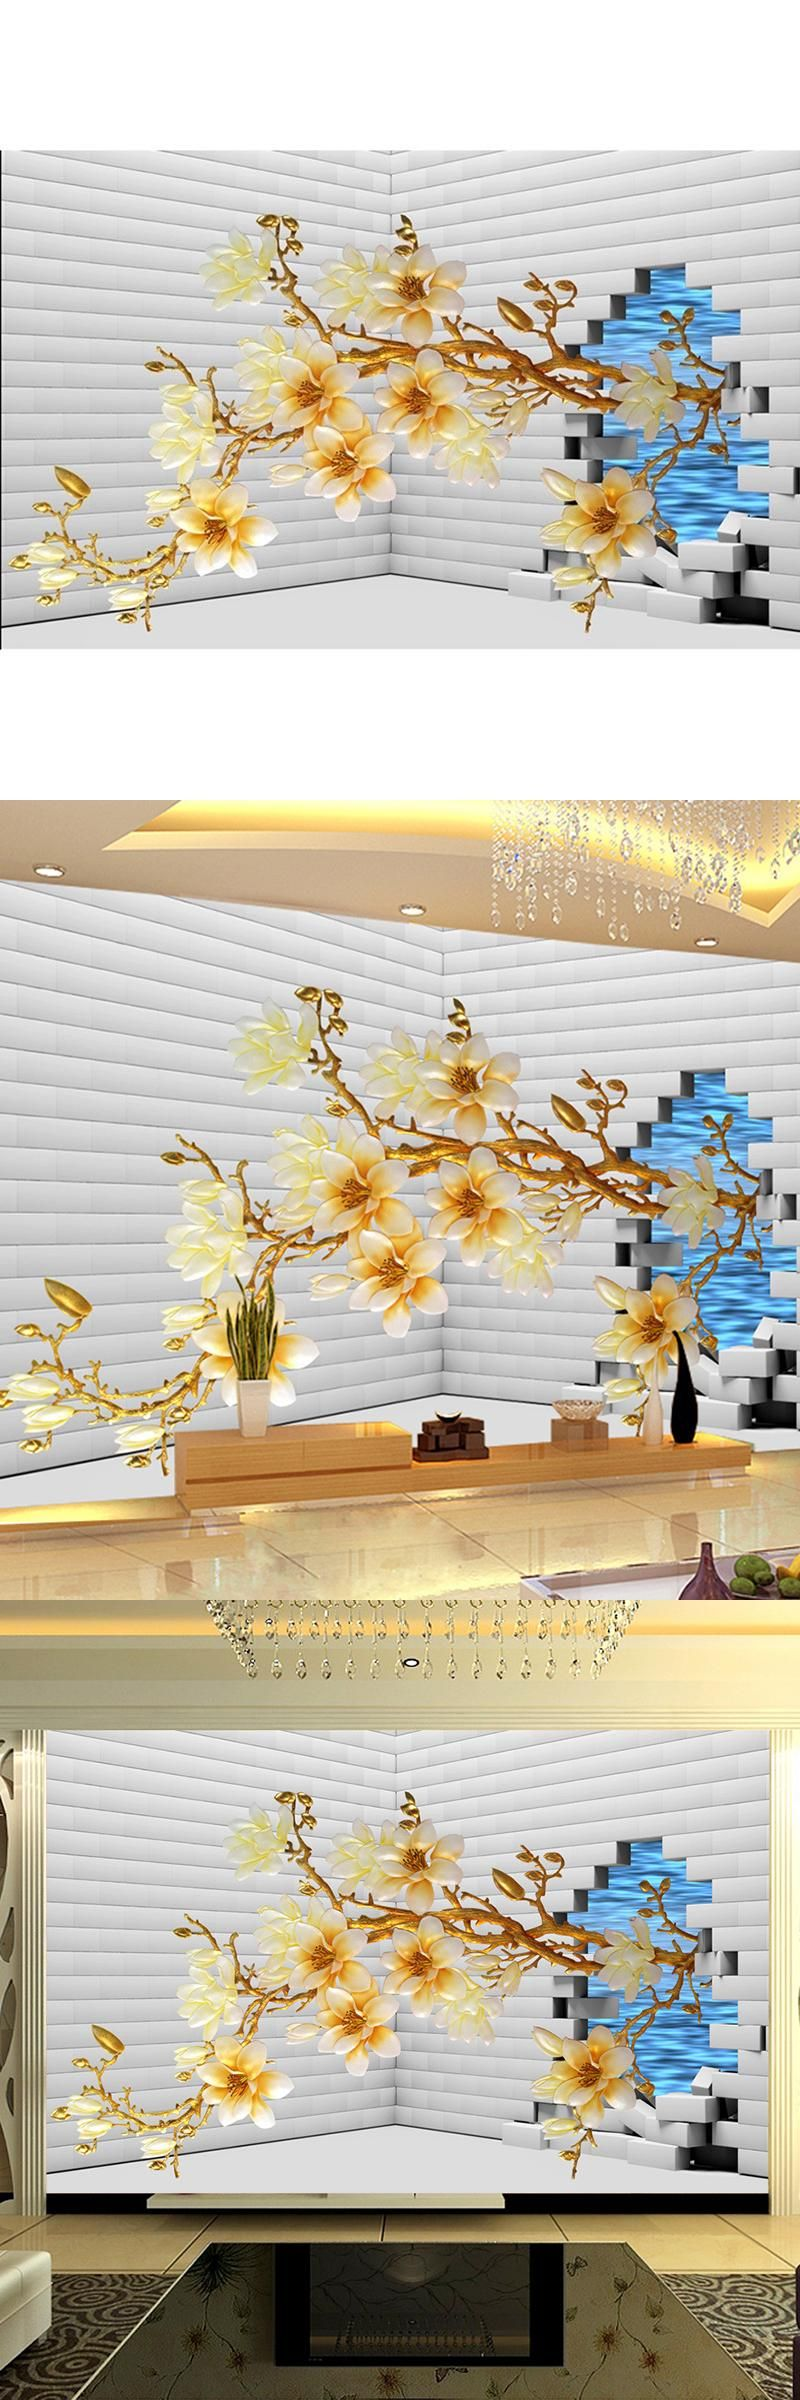 Modern Home Custom 3D Mural wallpaper Sofa Bedroom TV Backdrop Wall ...